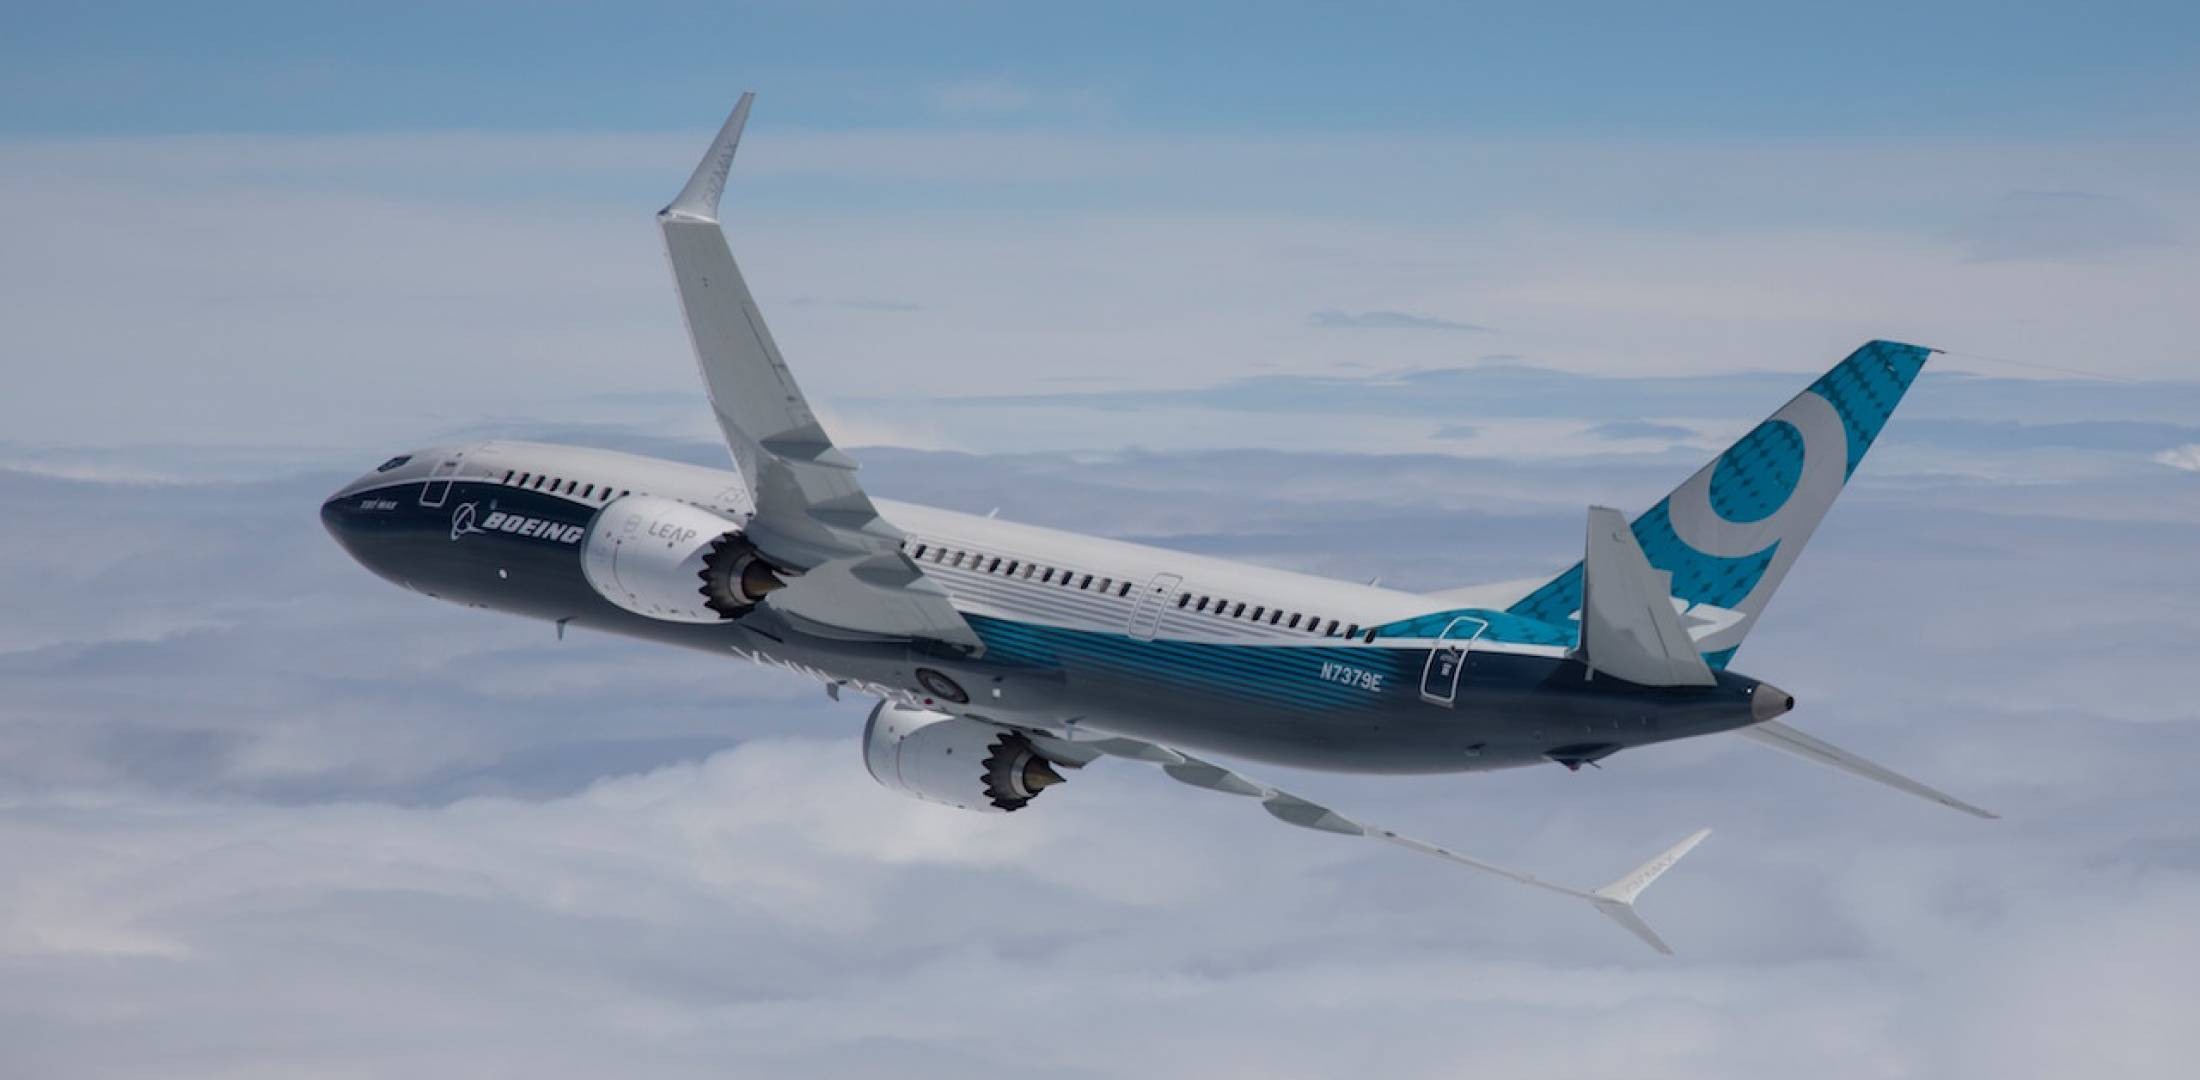 boeing 737 max 9 cleared for service air transport news aviation